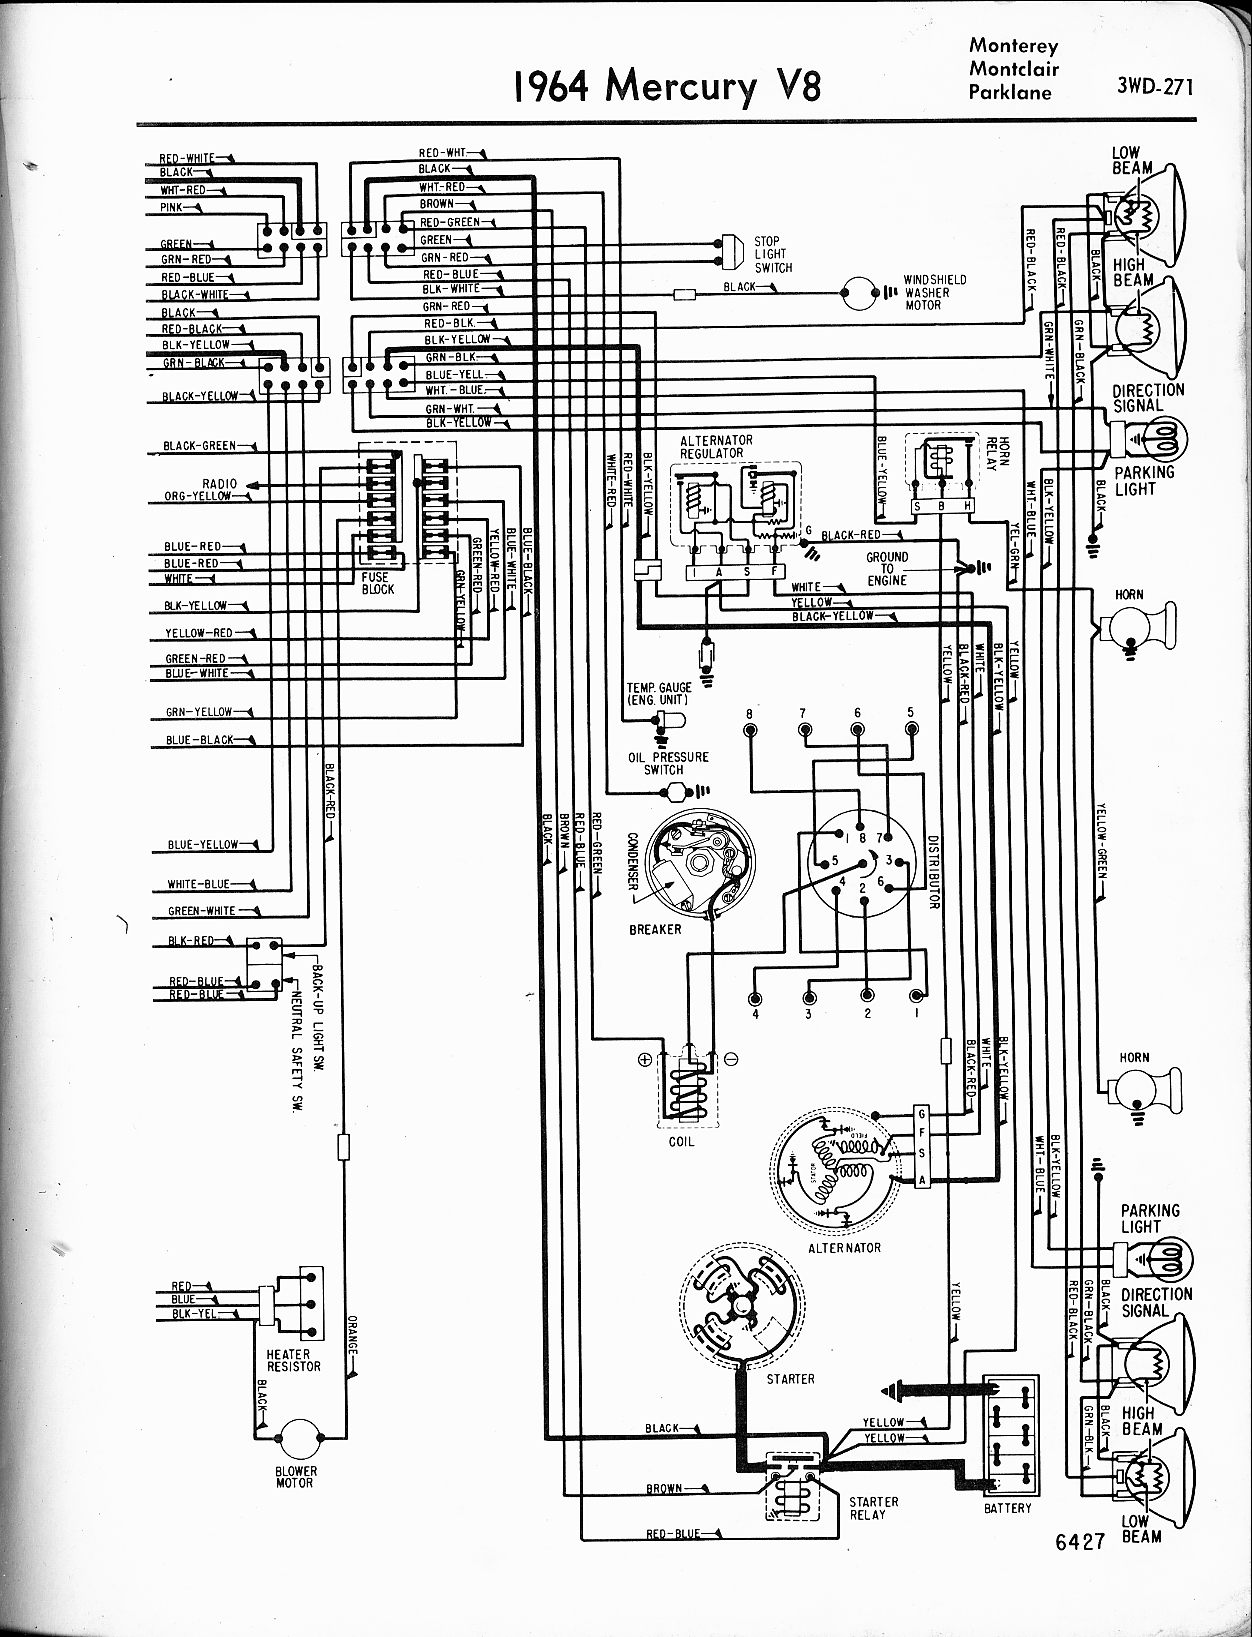 Mercury wiring diagrams - The Old Car Manual Project